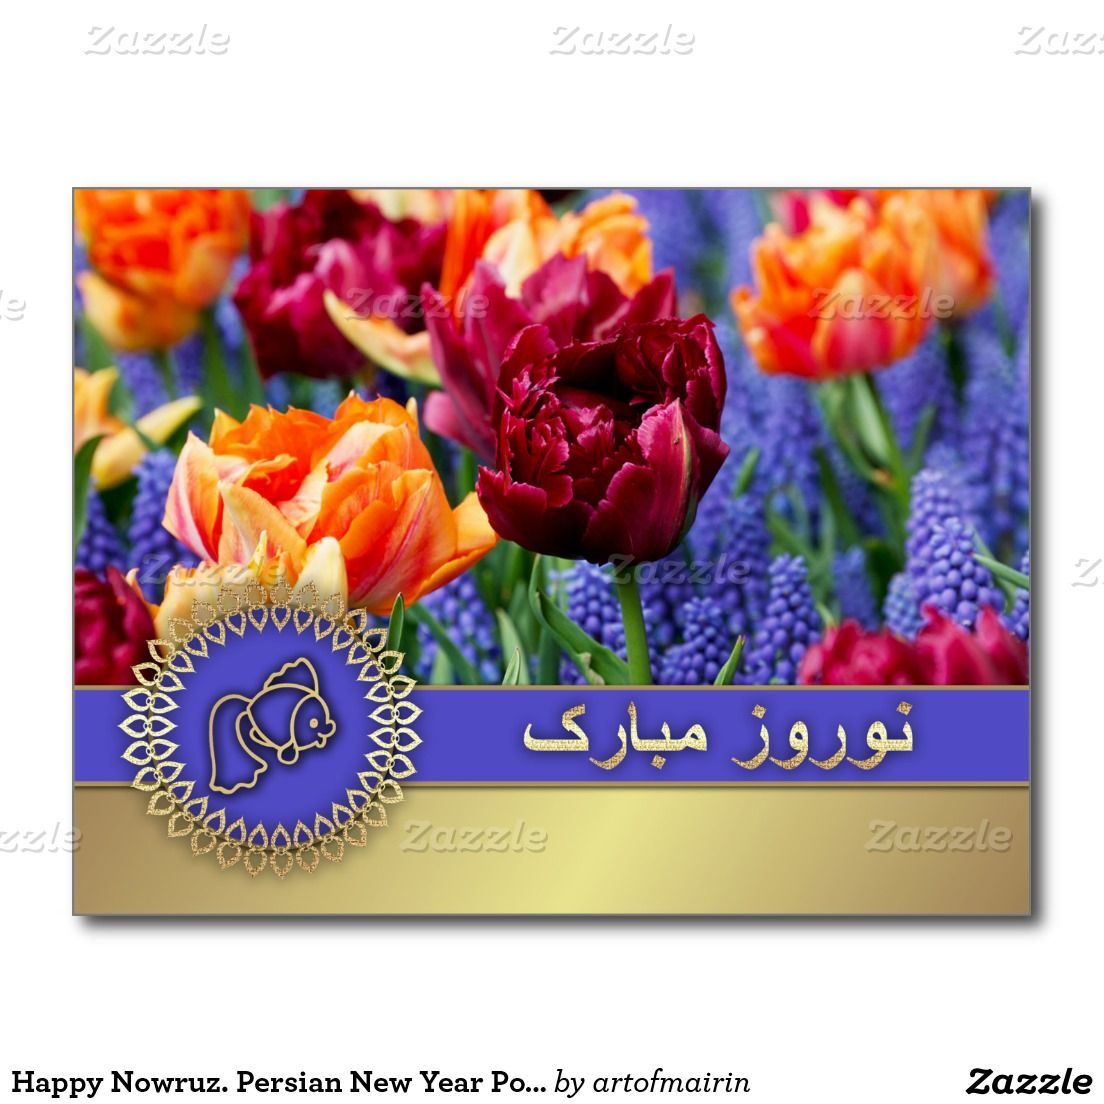 wruz mubarak spring tulip design muslim spring shop nowruz mubarak persian new year customizable cards created by artofmairin kristyandbryce Gallery